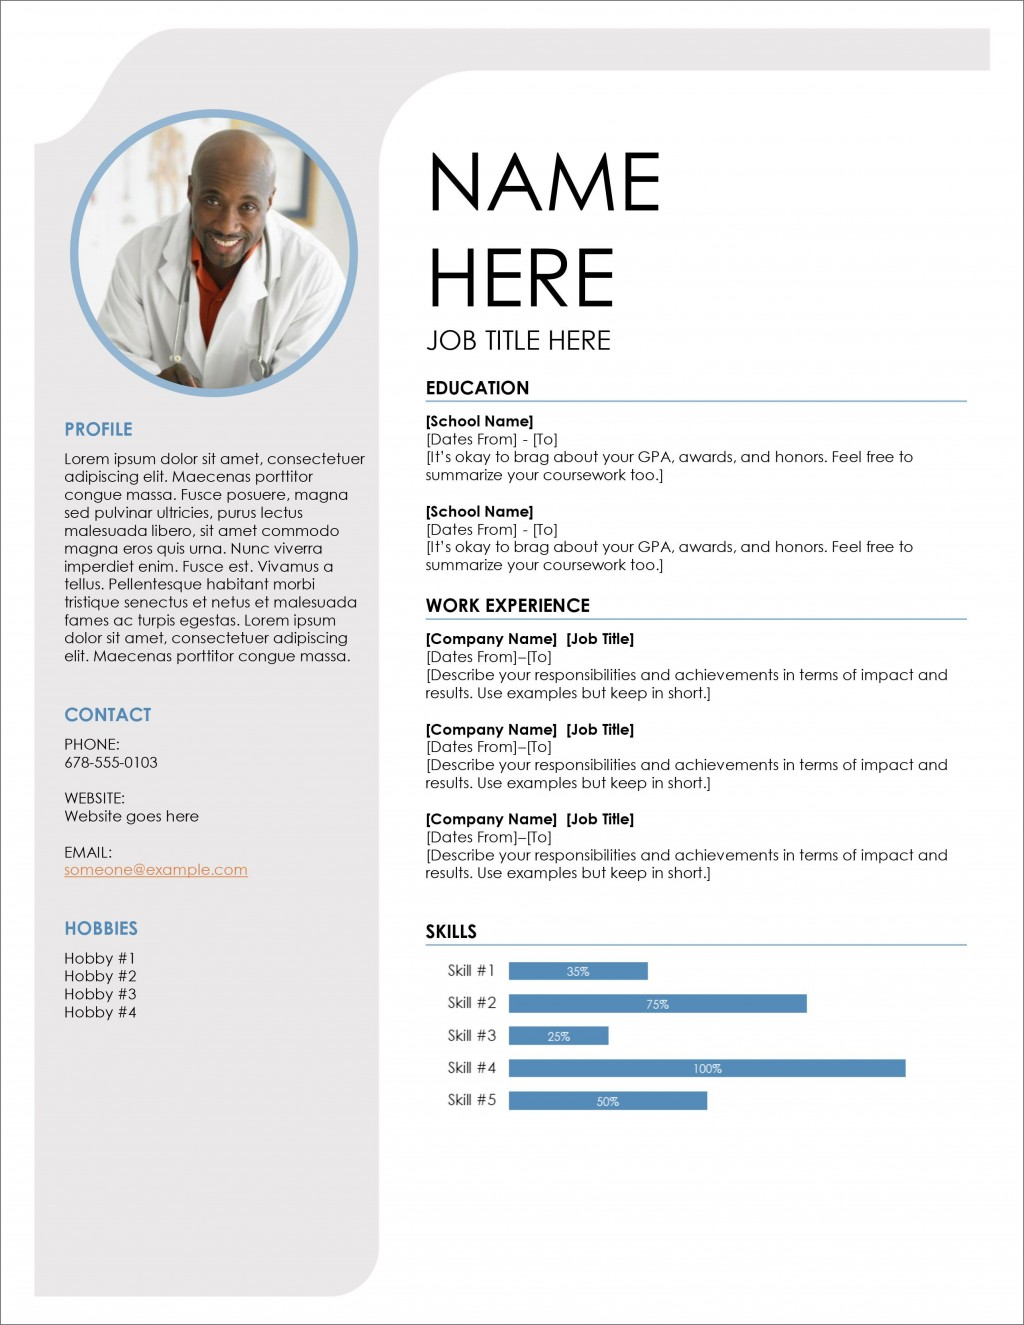 006 Surprising Resume Template For Microsoft Word 2007 Free Image  Download OfficeLarge